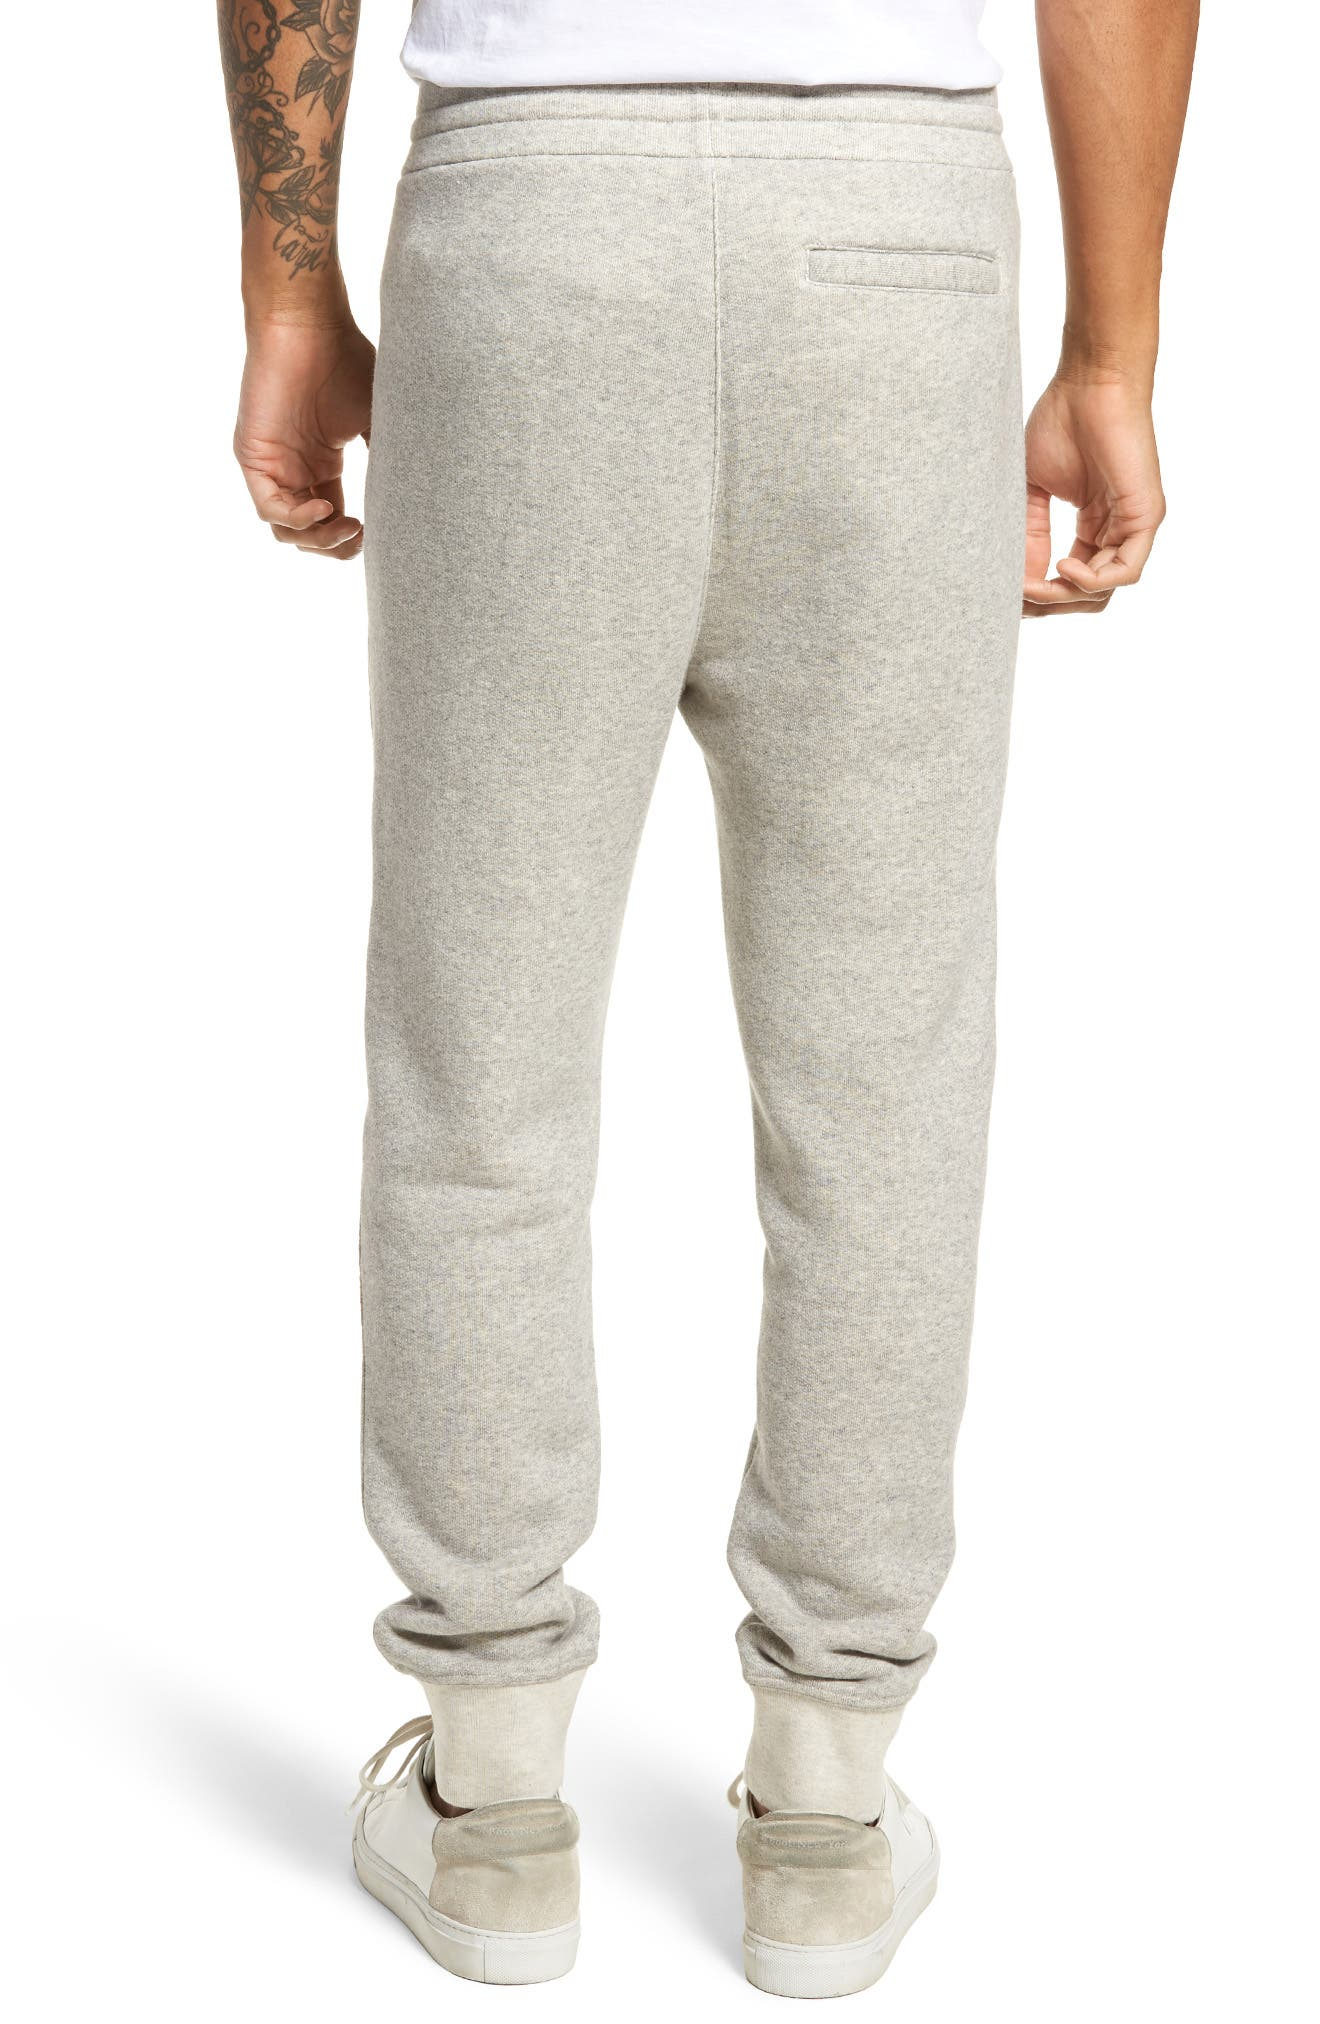 Plush Cotton Jogger Pants,                             Alternate thumbnail 3, color,                             Light Heather Grey